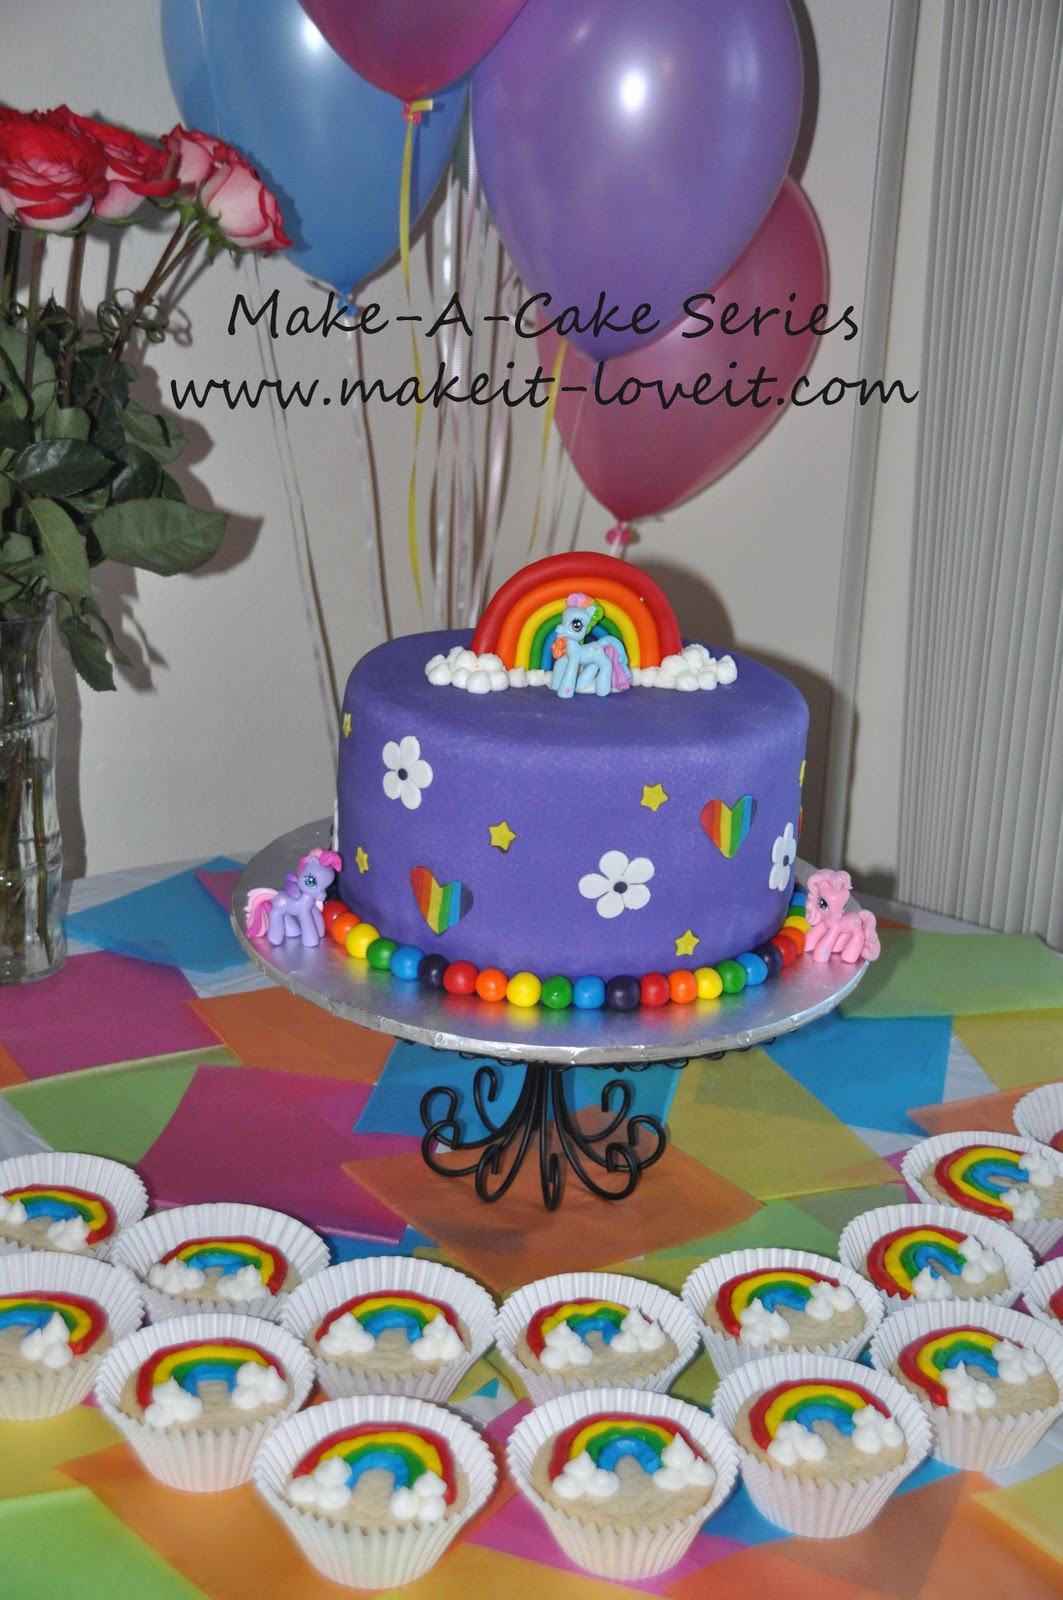 MakeaCake Series My Little Pony Cake and Rainbow Cookies Make